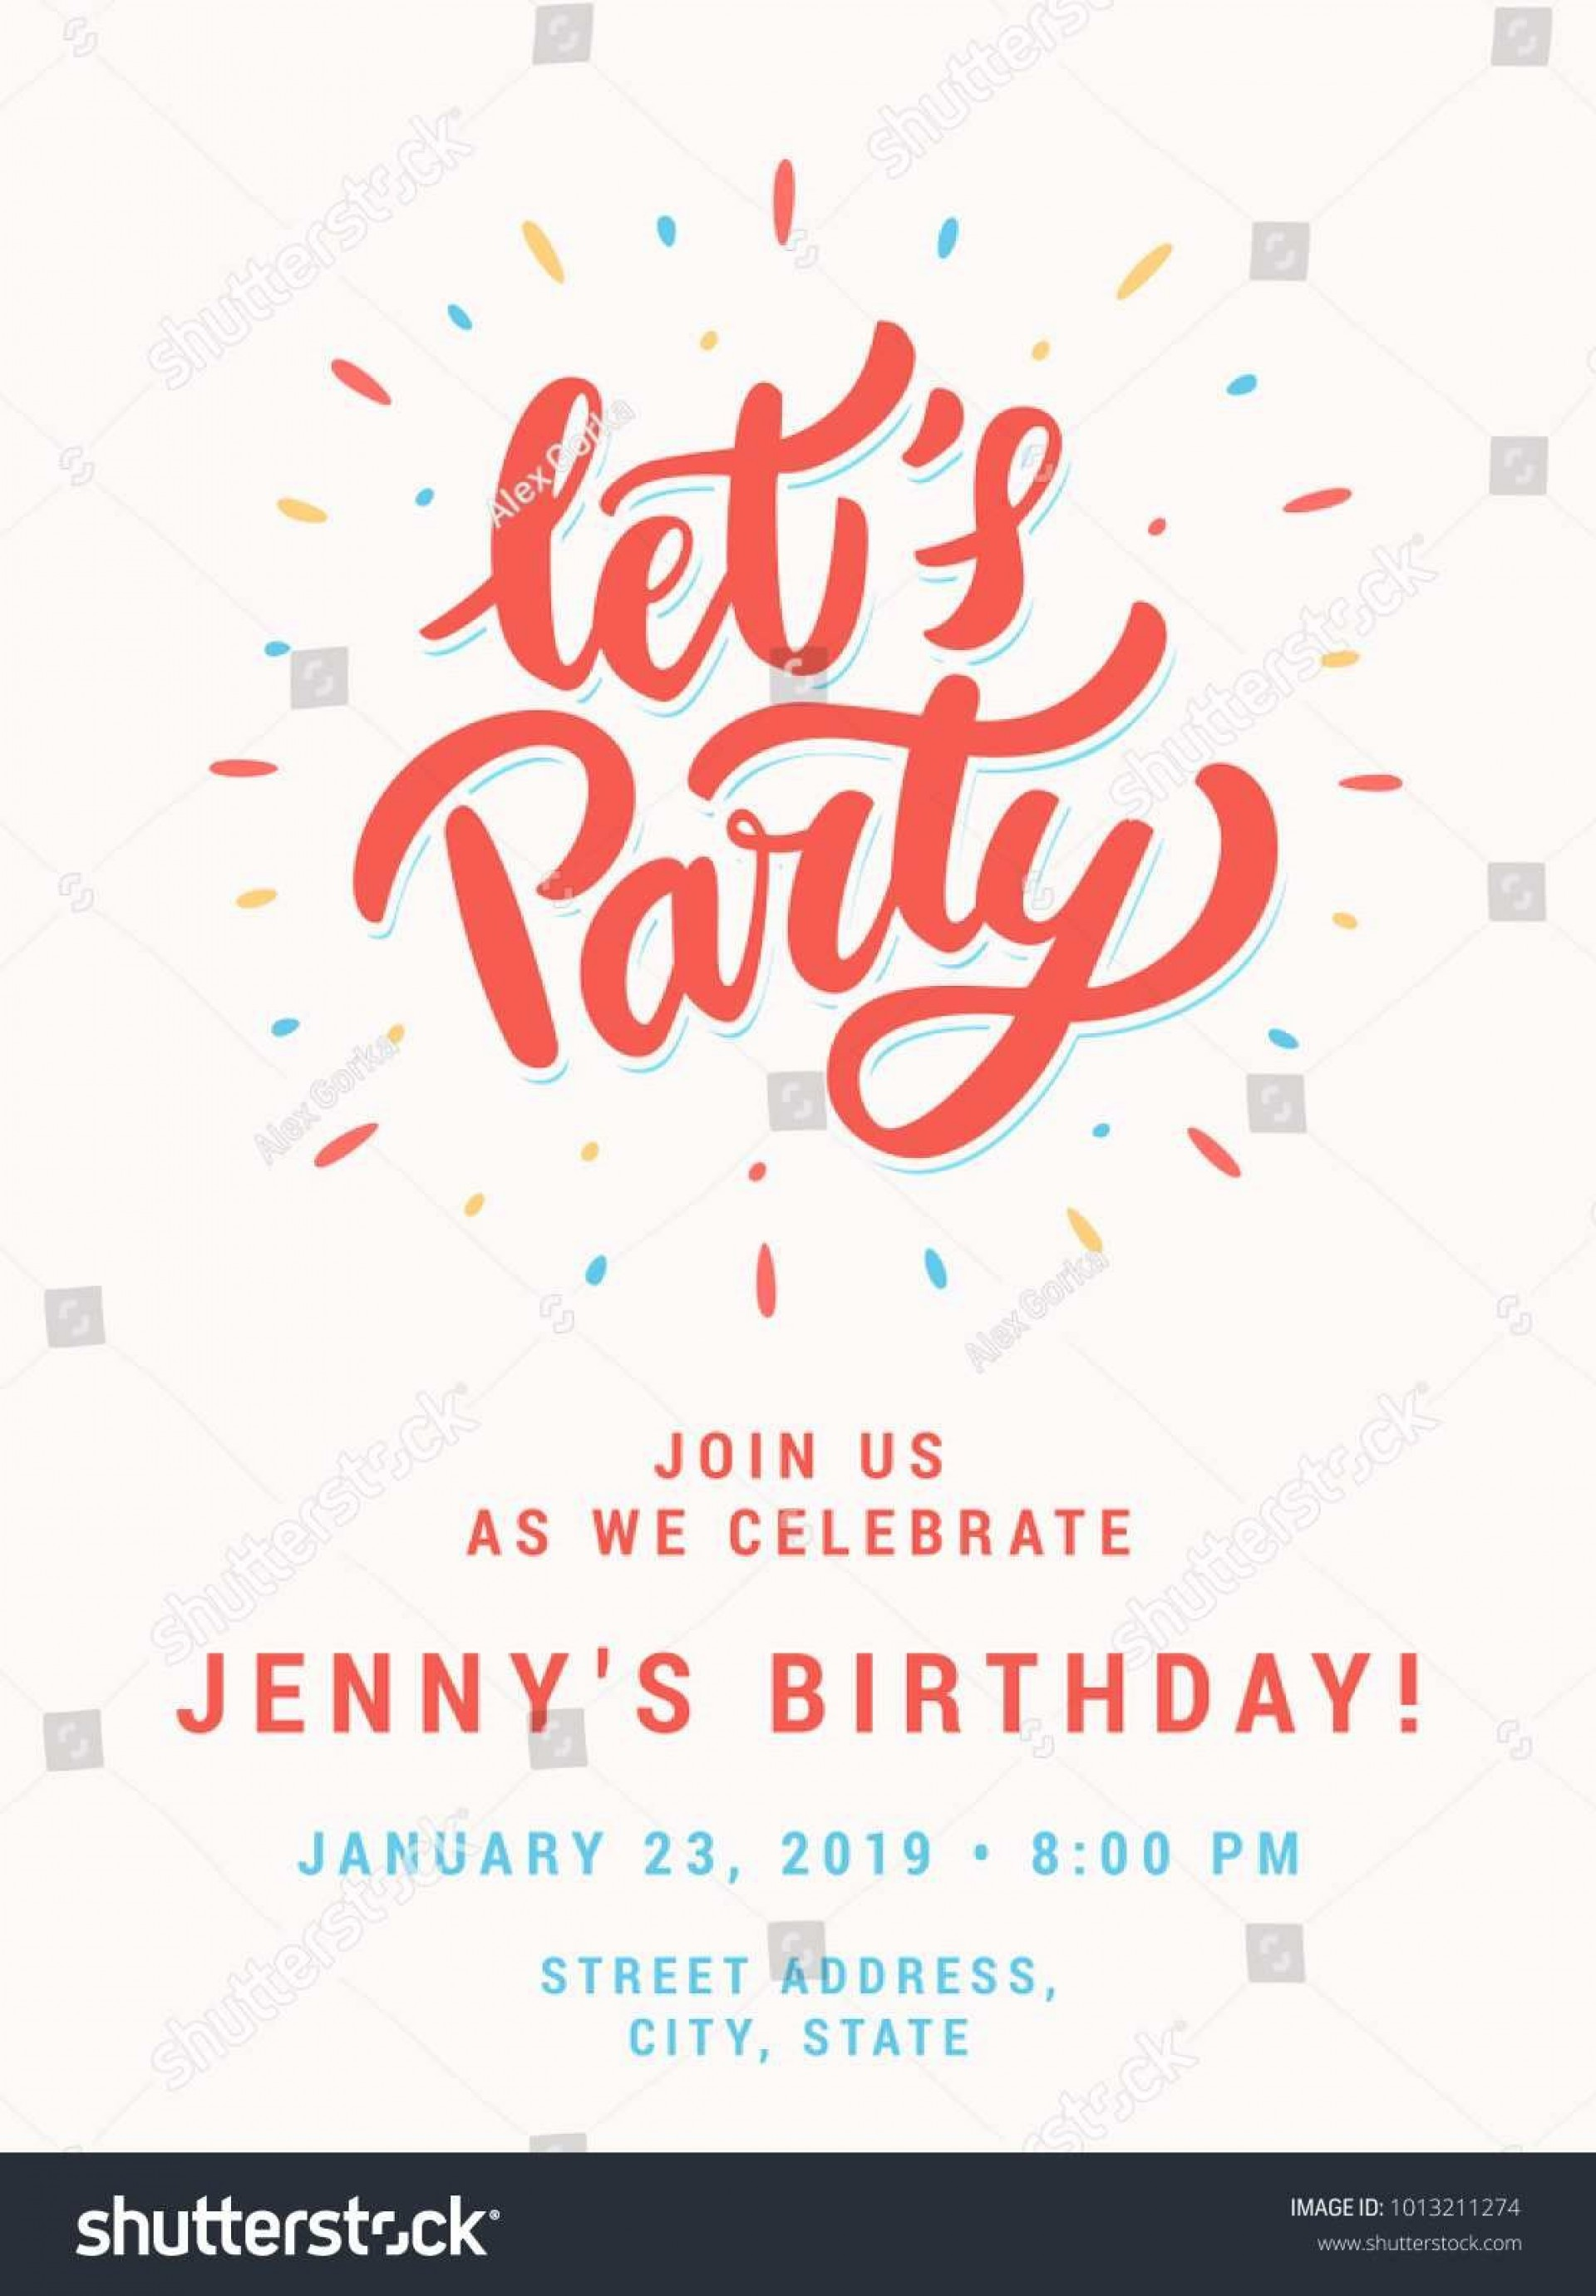 003 Wonderful Birthday Party Invitation Template Word Free Example  Download Invite1920